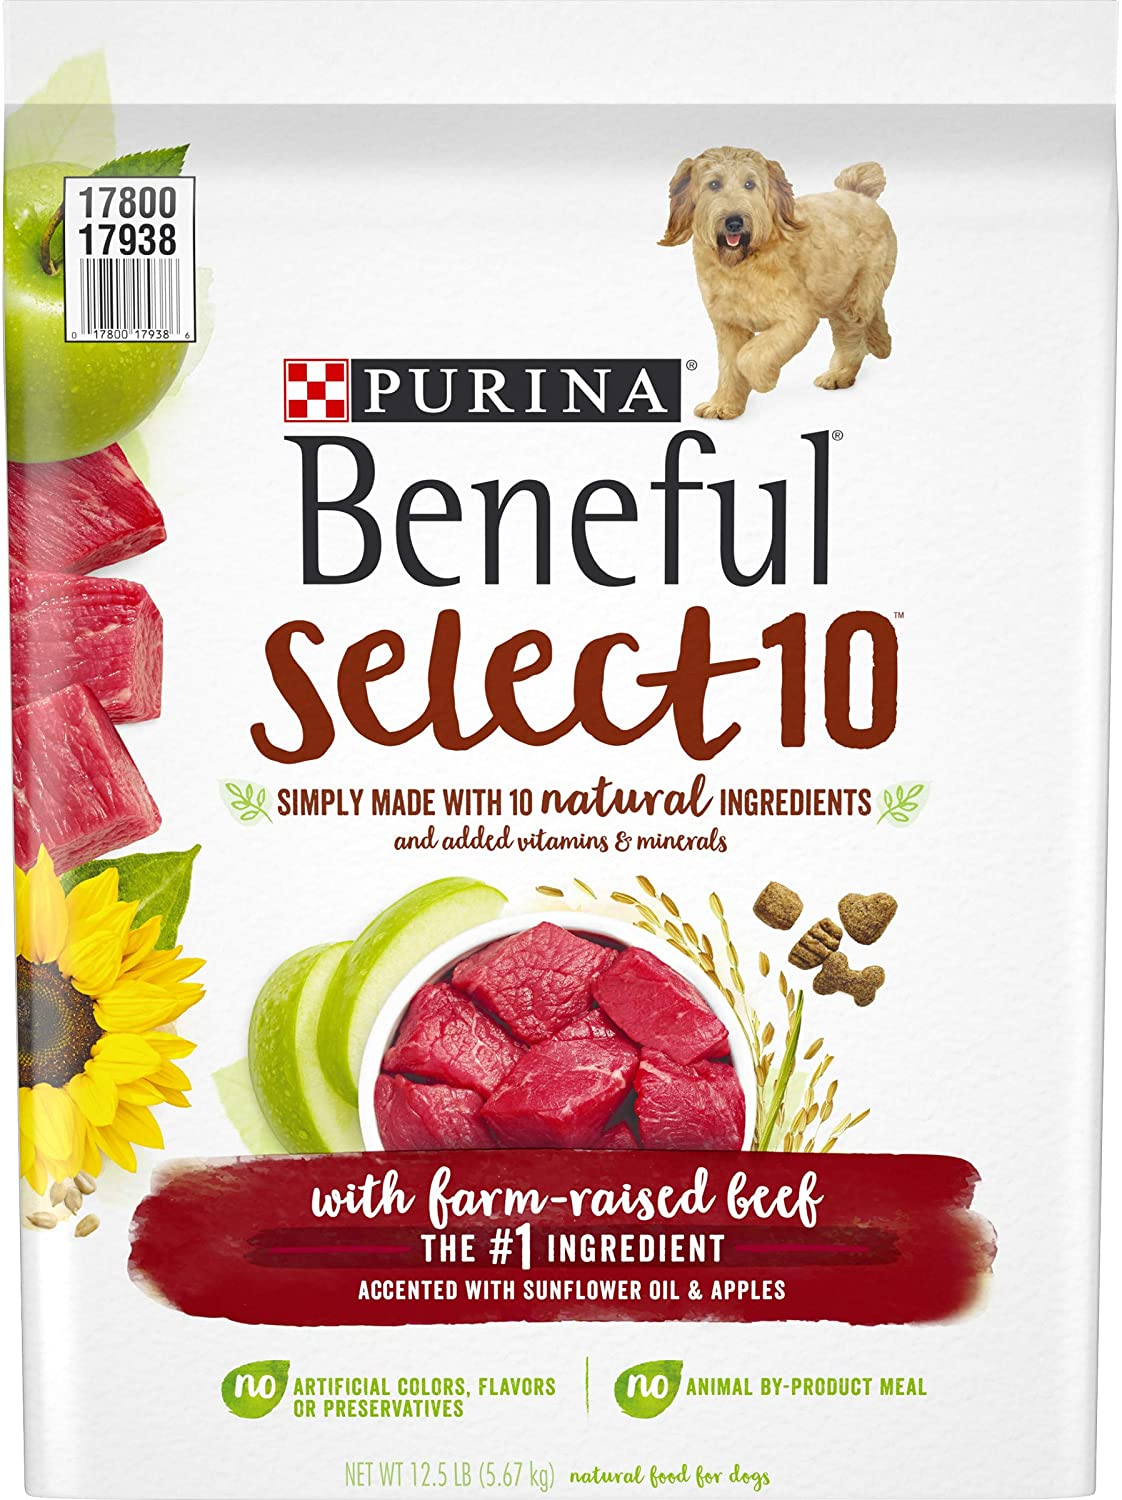 Purina Beneful Select 10 with Farm-Raised Beef Adult Dry Dog Food